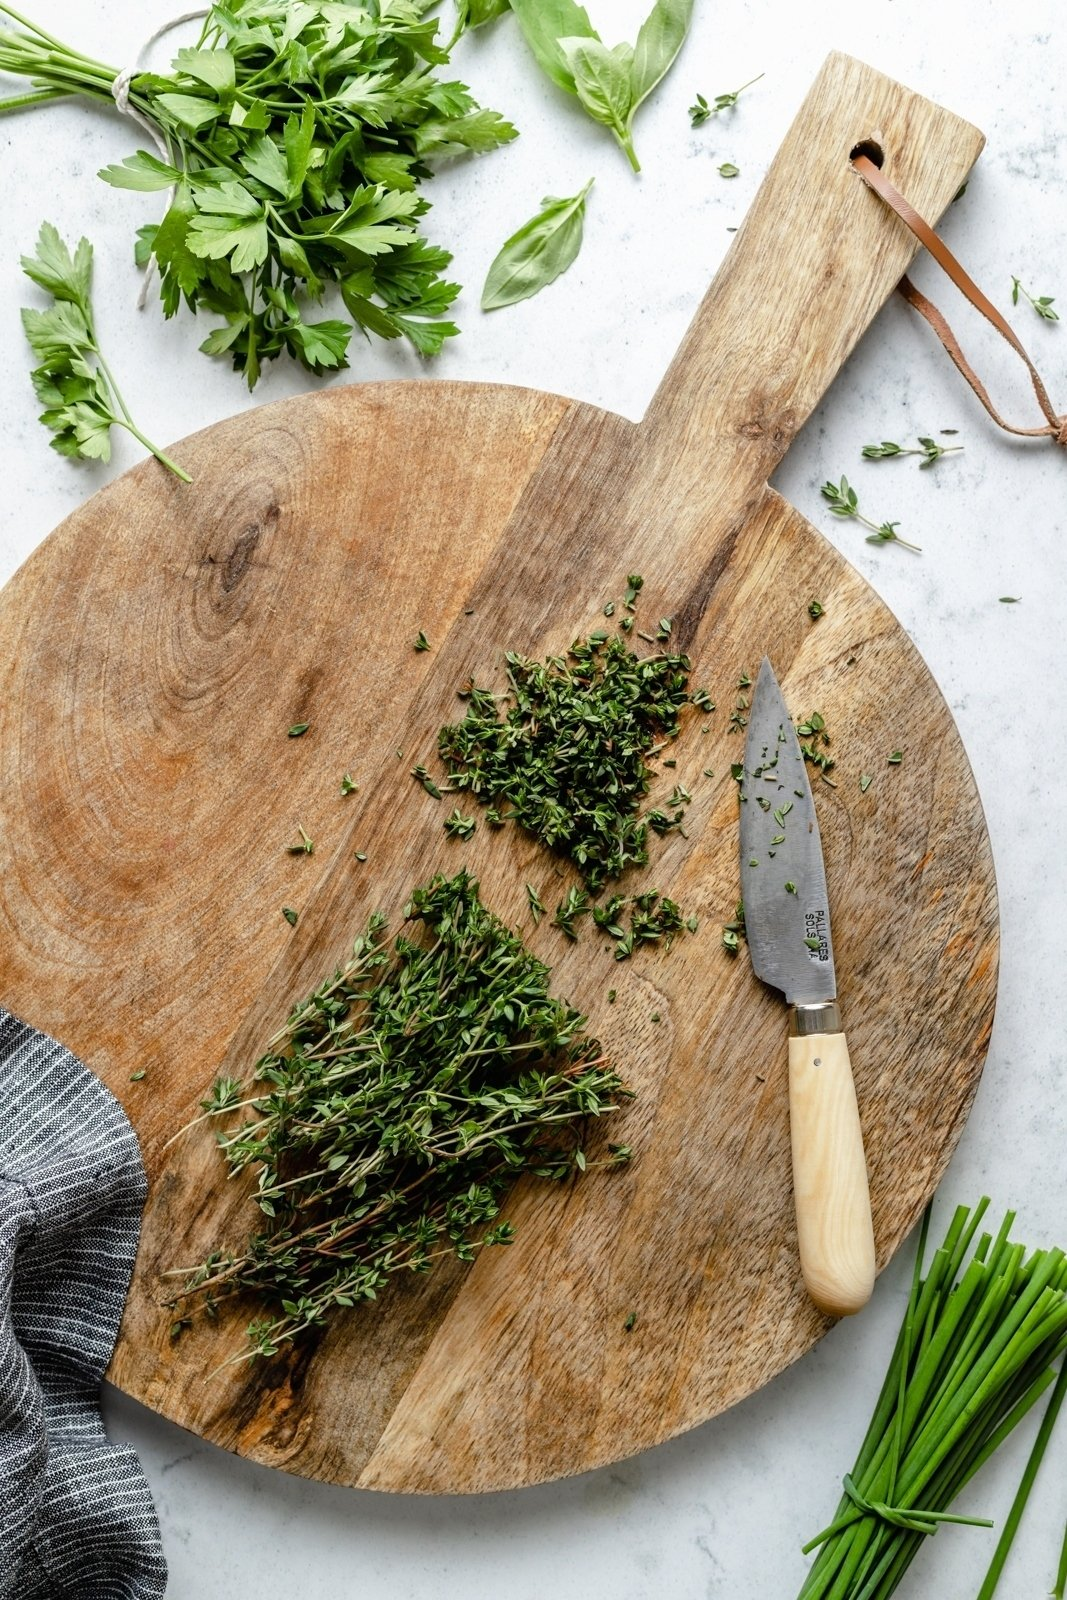 chopping herbs on a wooden board